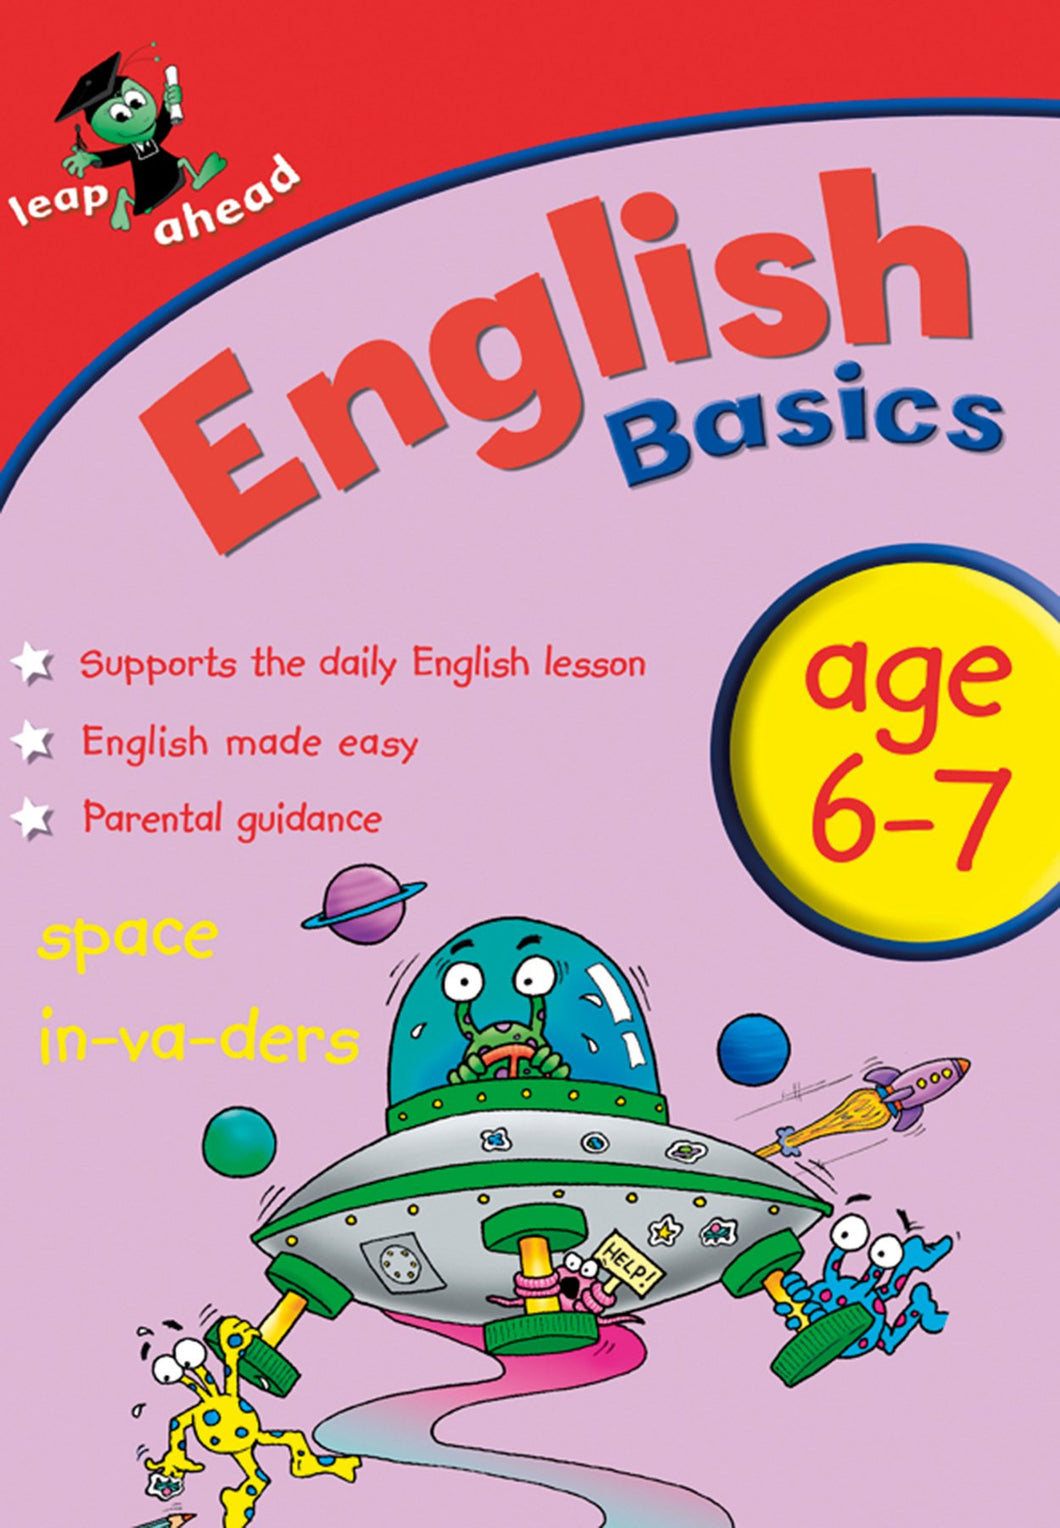 Leap Ahead: KS1 English Basics Ages 6-7